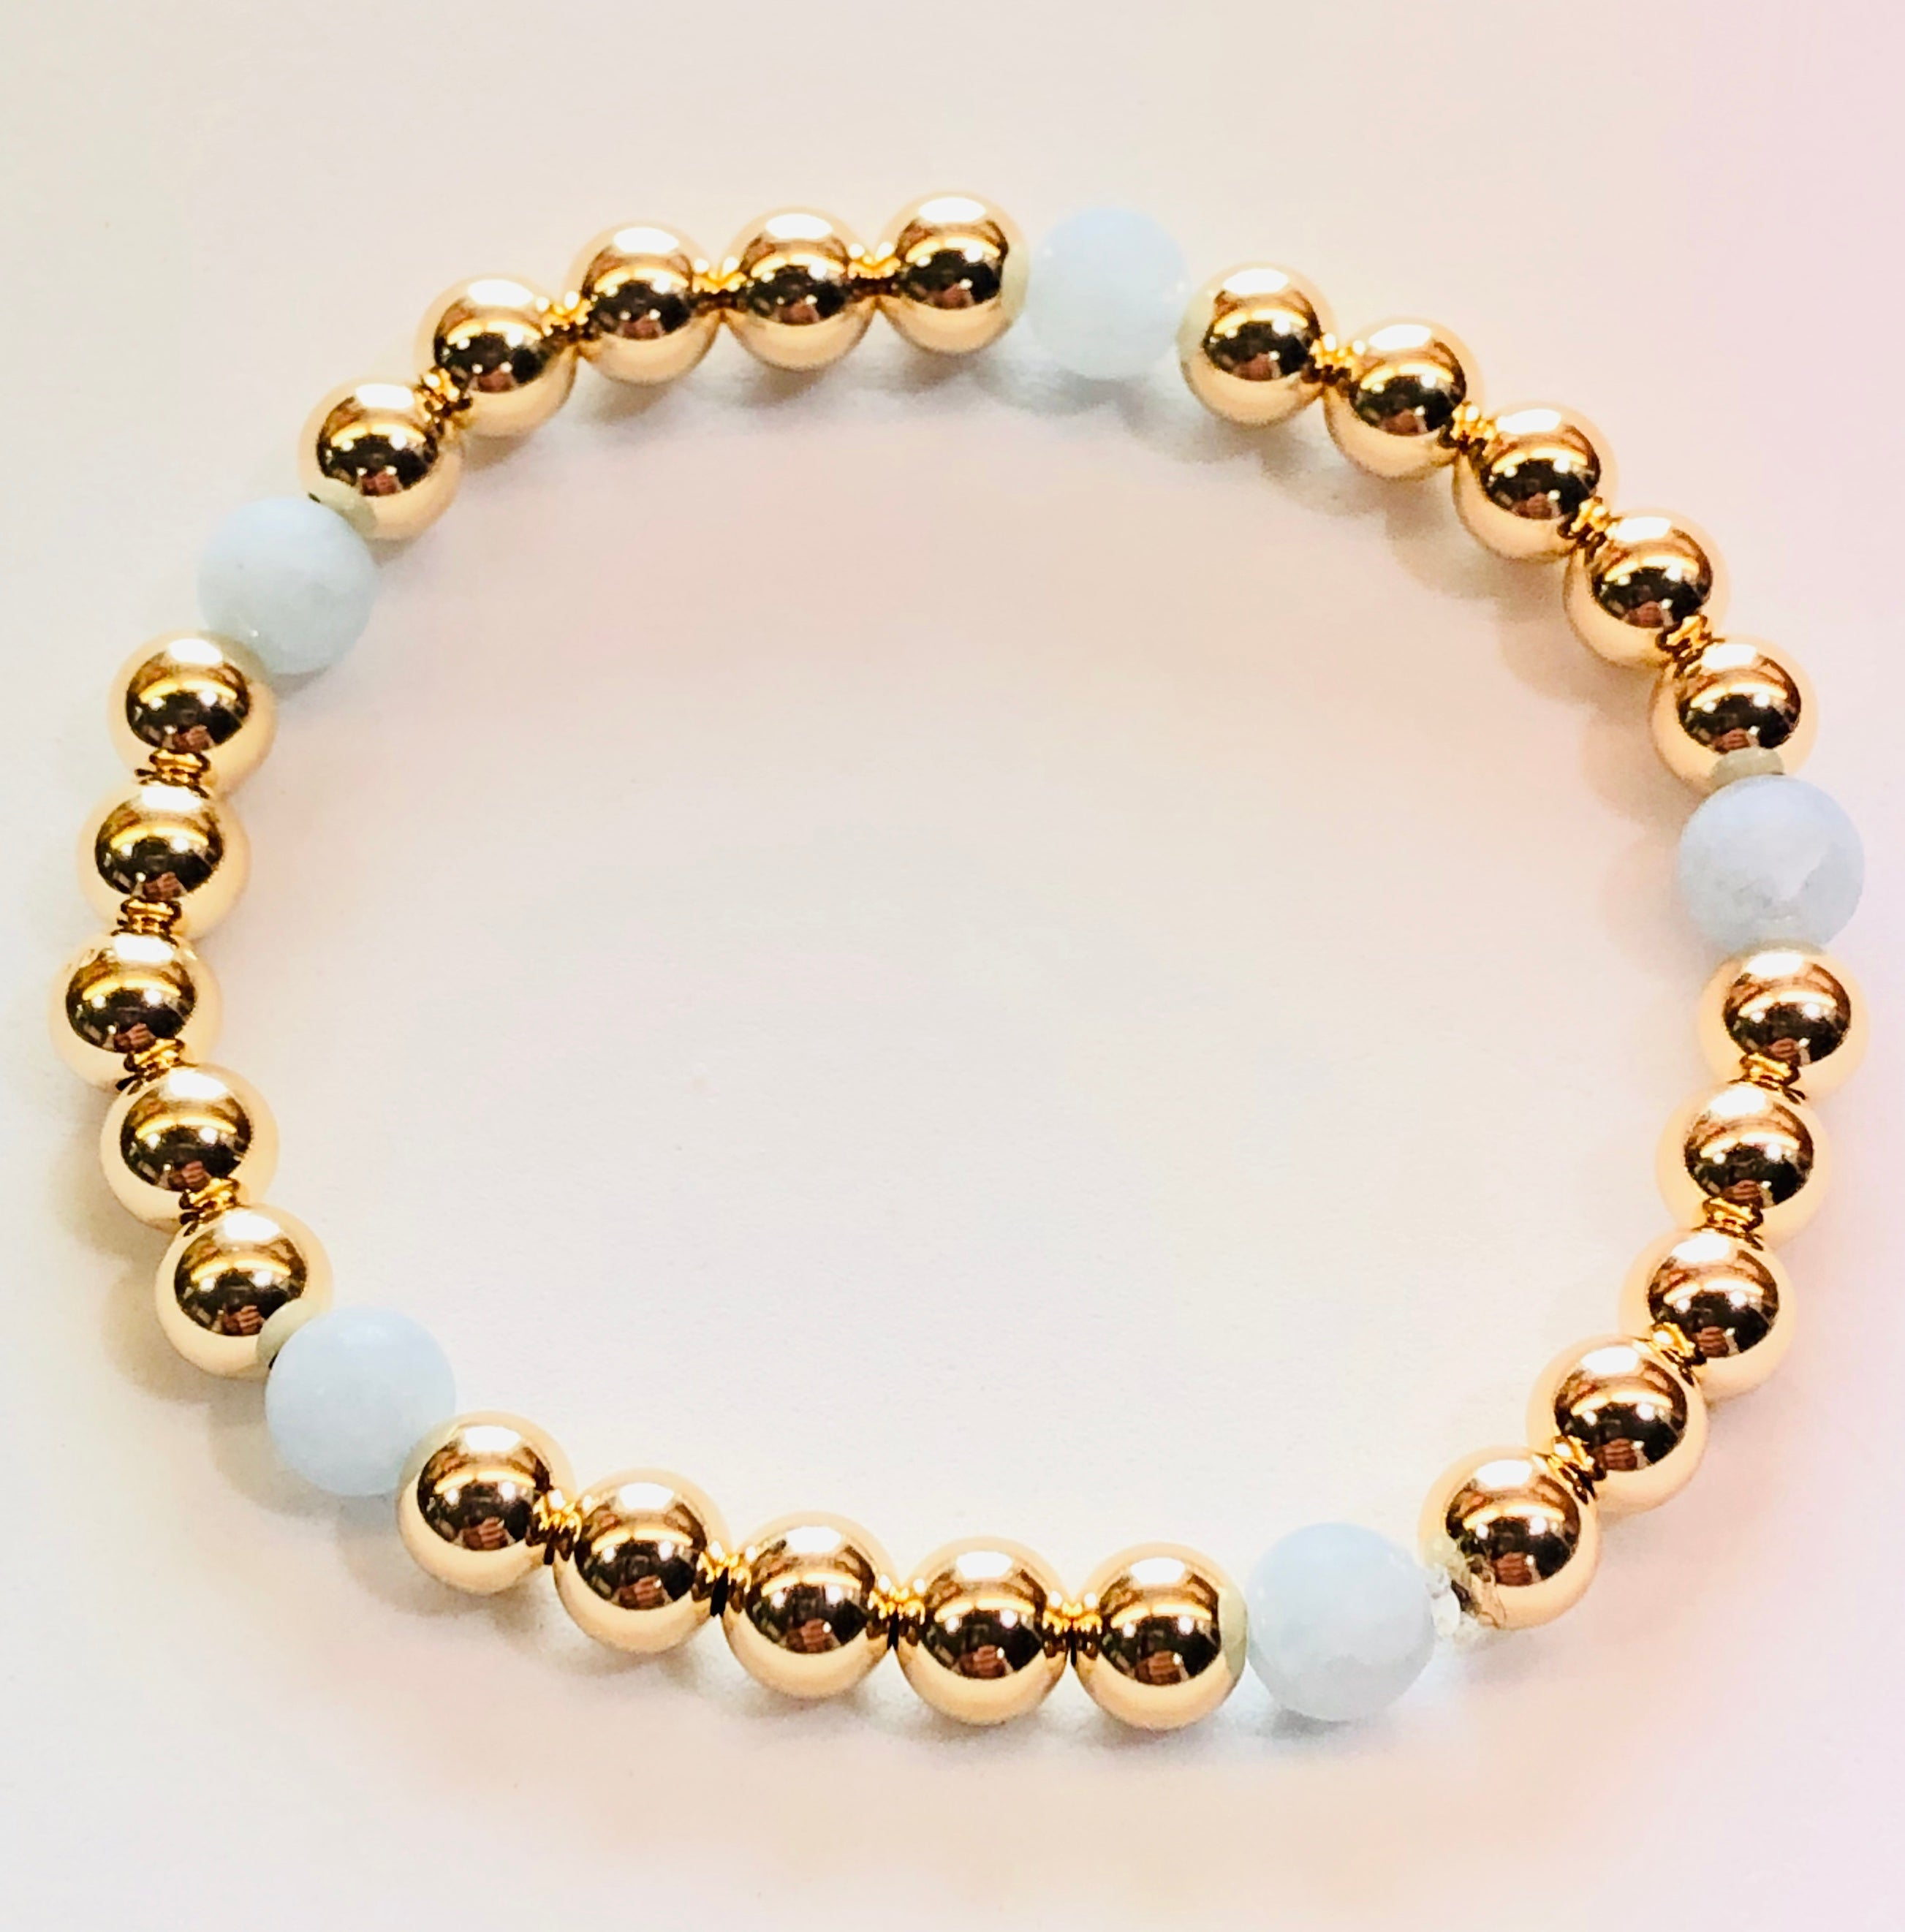 6mm 14kt Gold Filled Bead Bracelet with 5 Matte Finish Aquamarine Beads